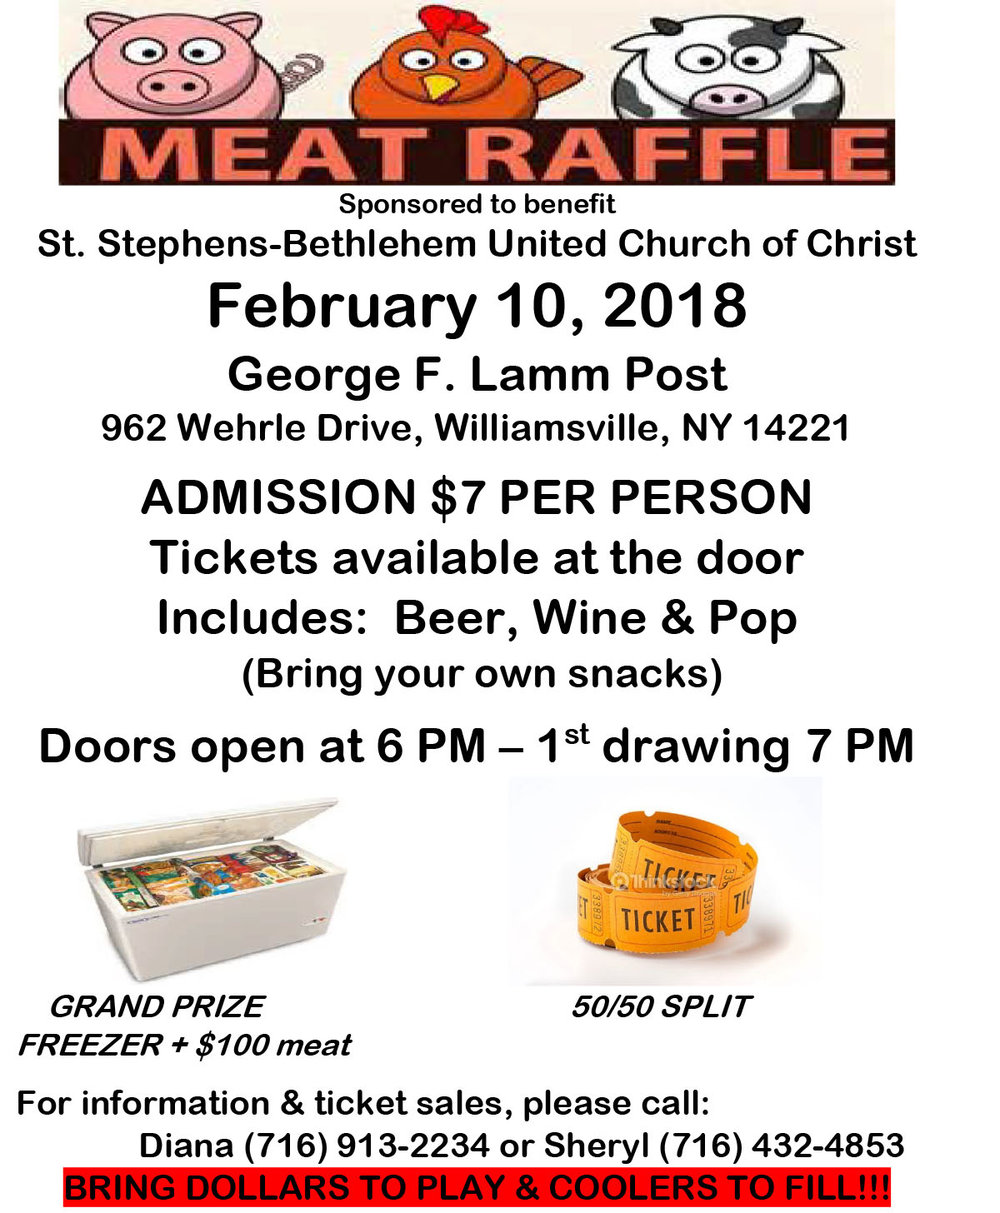 Meat raffle poster templates